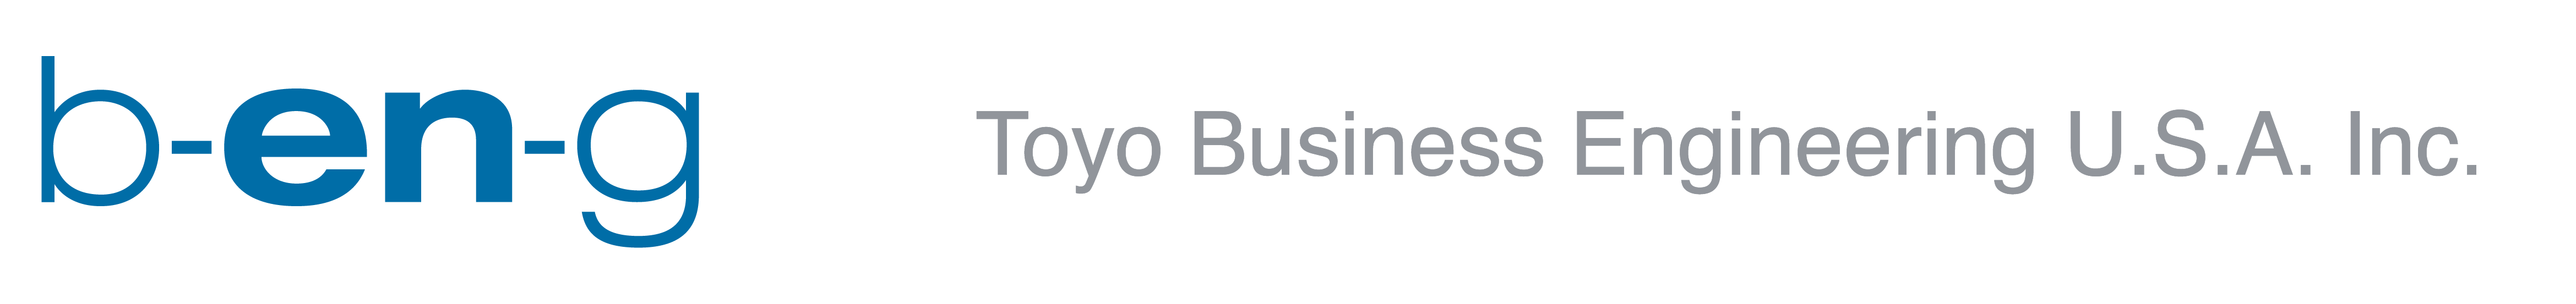 Toy Business Engineering U.S.A. Inc.